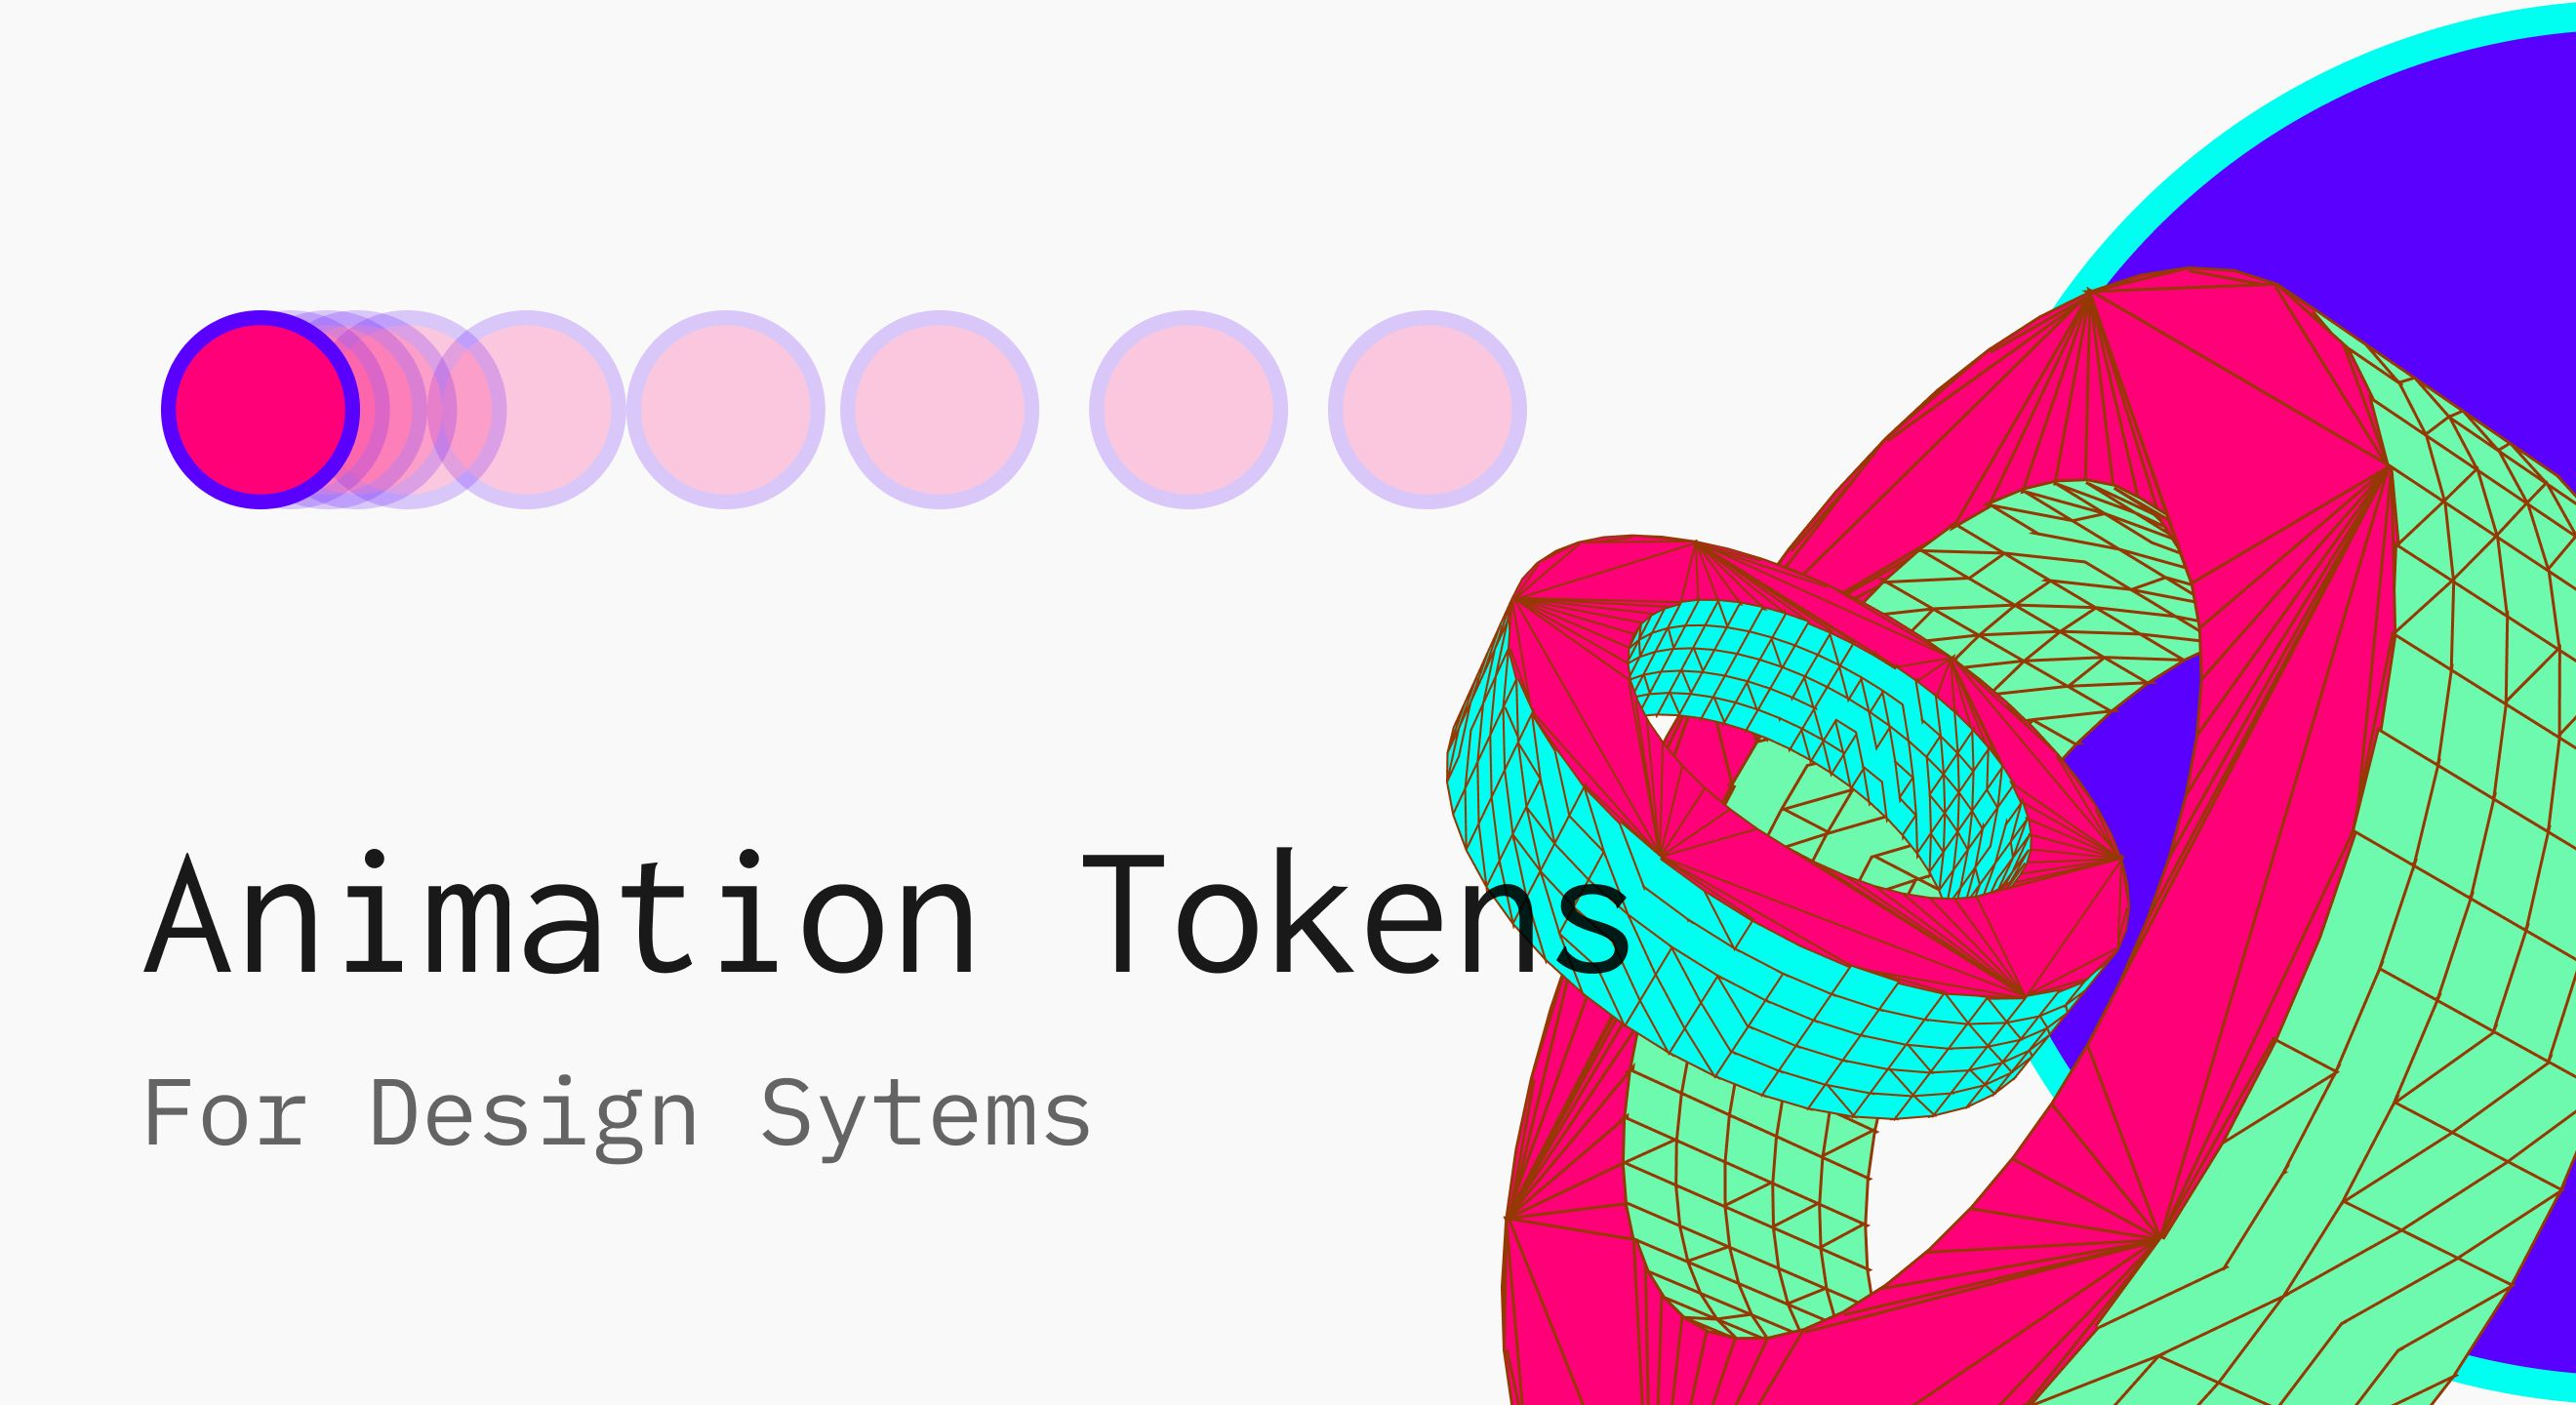 /using-animationmotion-design-tokens-for-more-complex-and-sophisticated-design-zy3t33y5 feature image